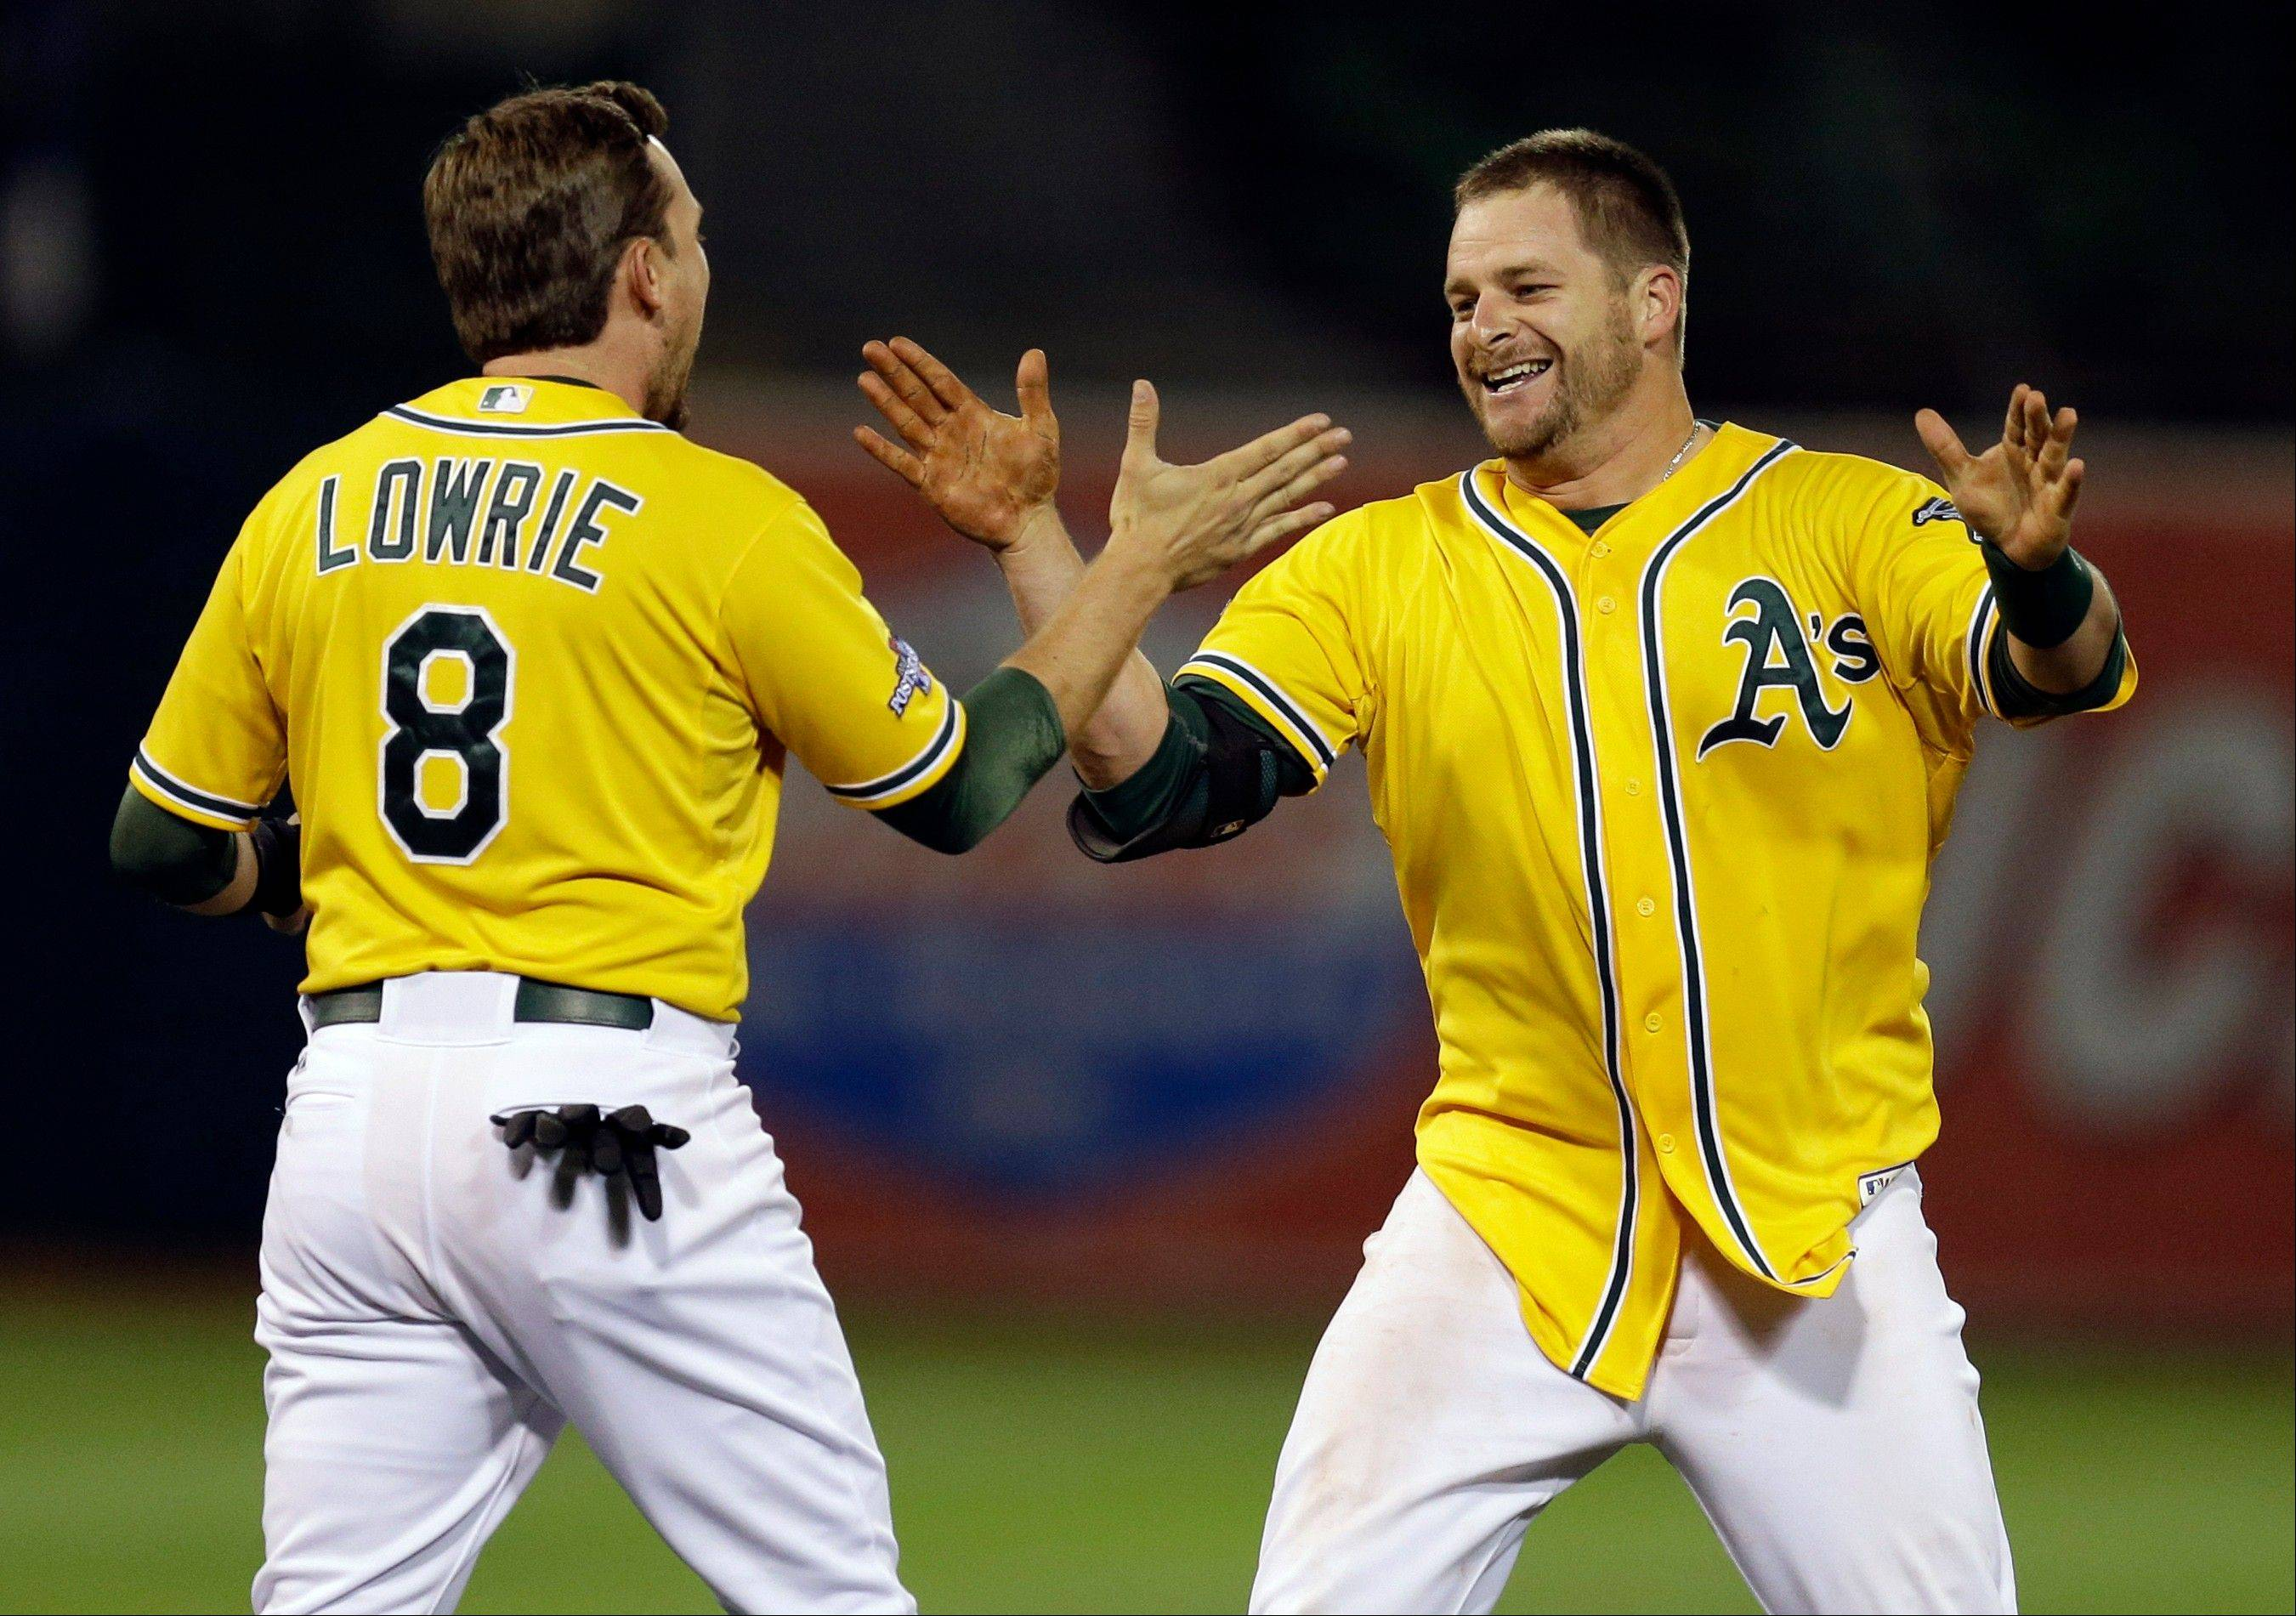 Oakland Athletics Stephen Vogt is congratulated by teammate Jed Lowrie after Vogt made the game winning hit in the bottom of the ninth inning to beat the Detroit Tigers 1-0 in Game 2 of an American League baseball Division Series Saturday night in Oakland, Calif.